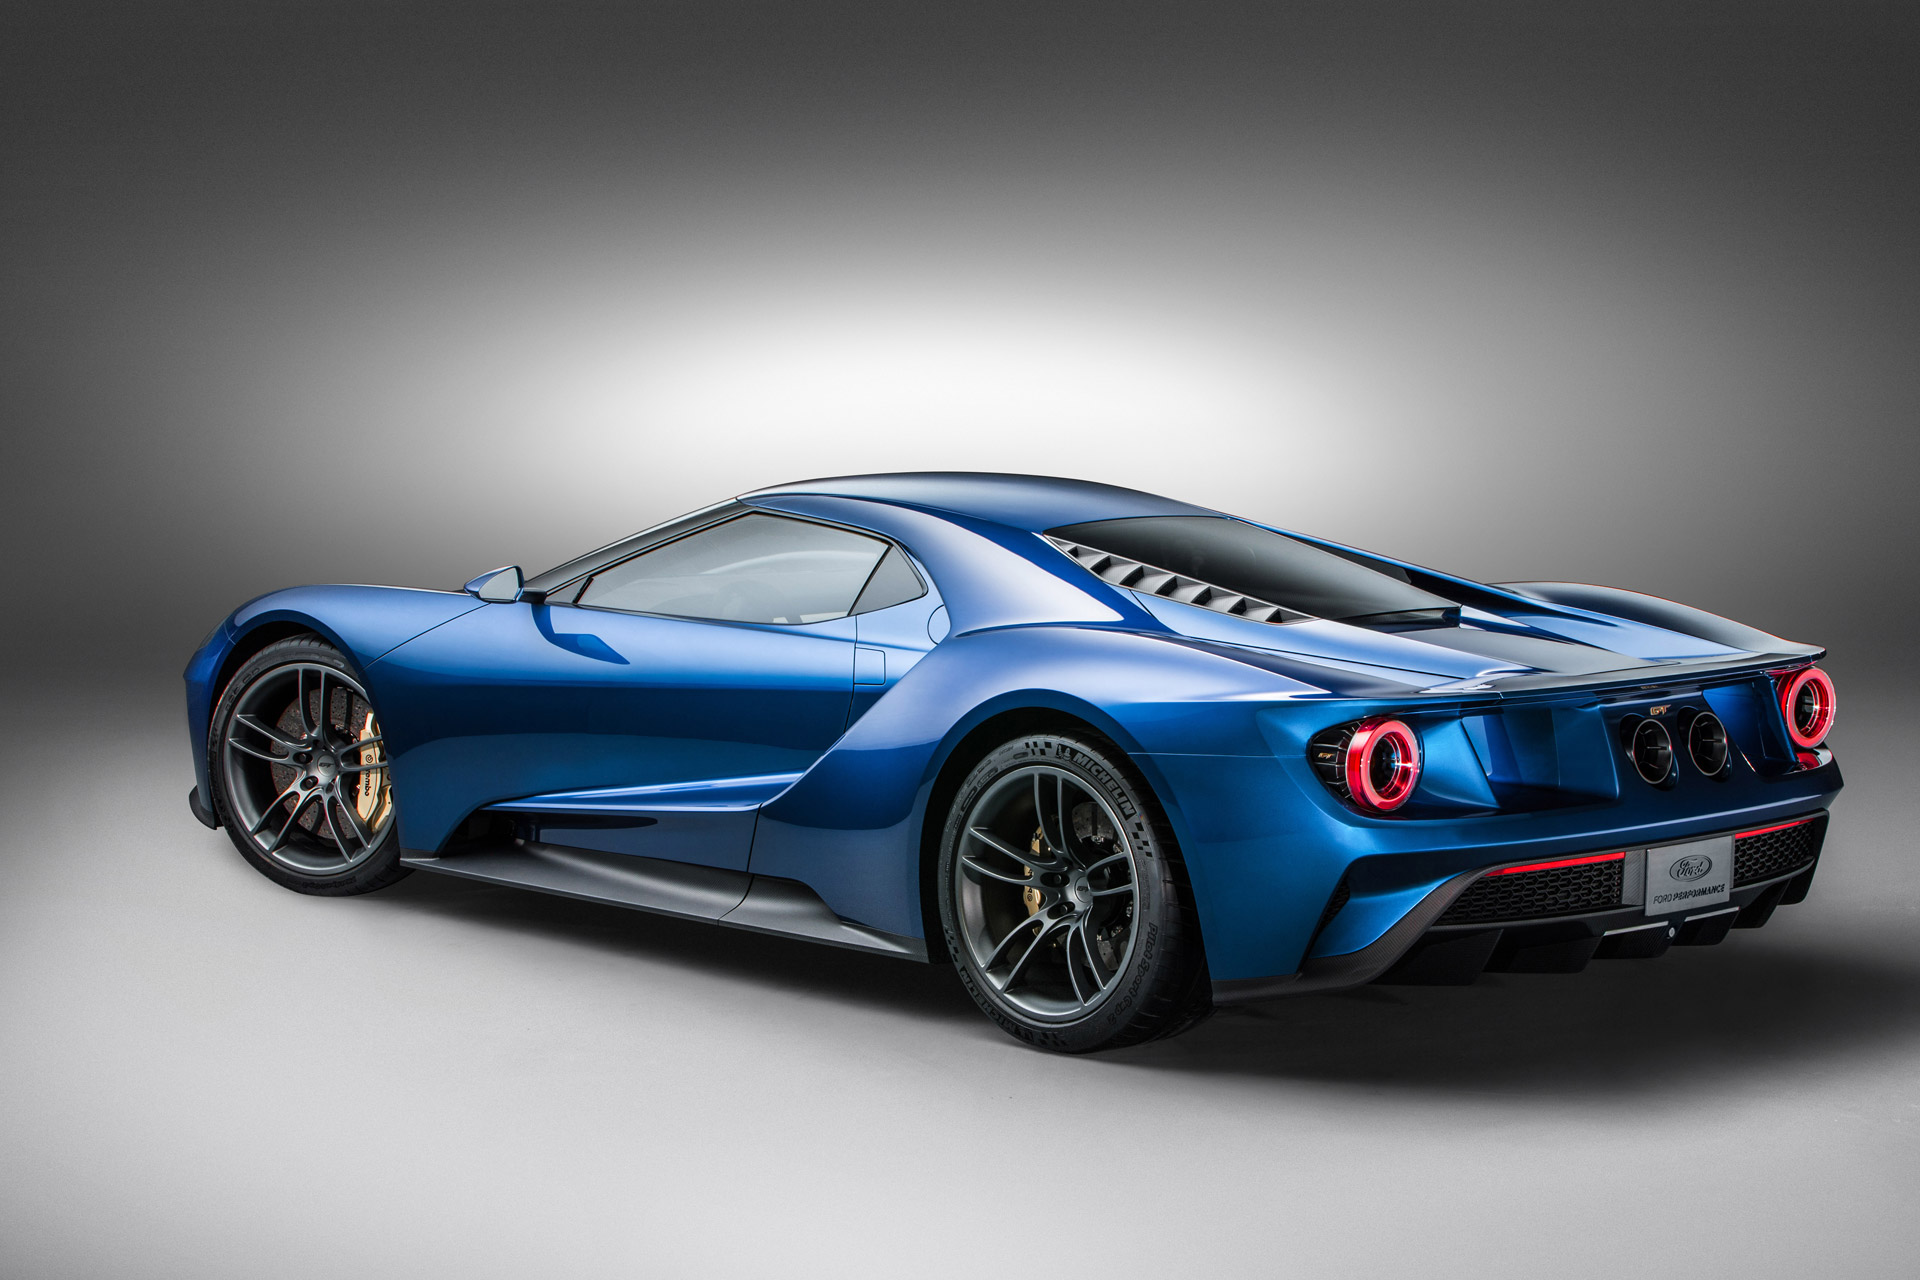 New Ford Gt Coming With 630 Hp And 539 Lb Ft According To